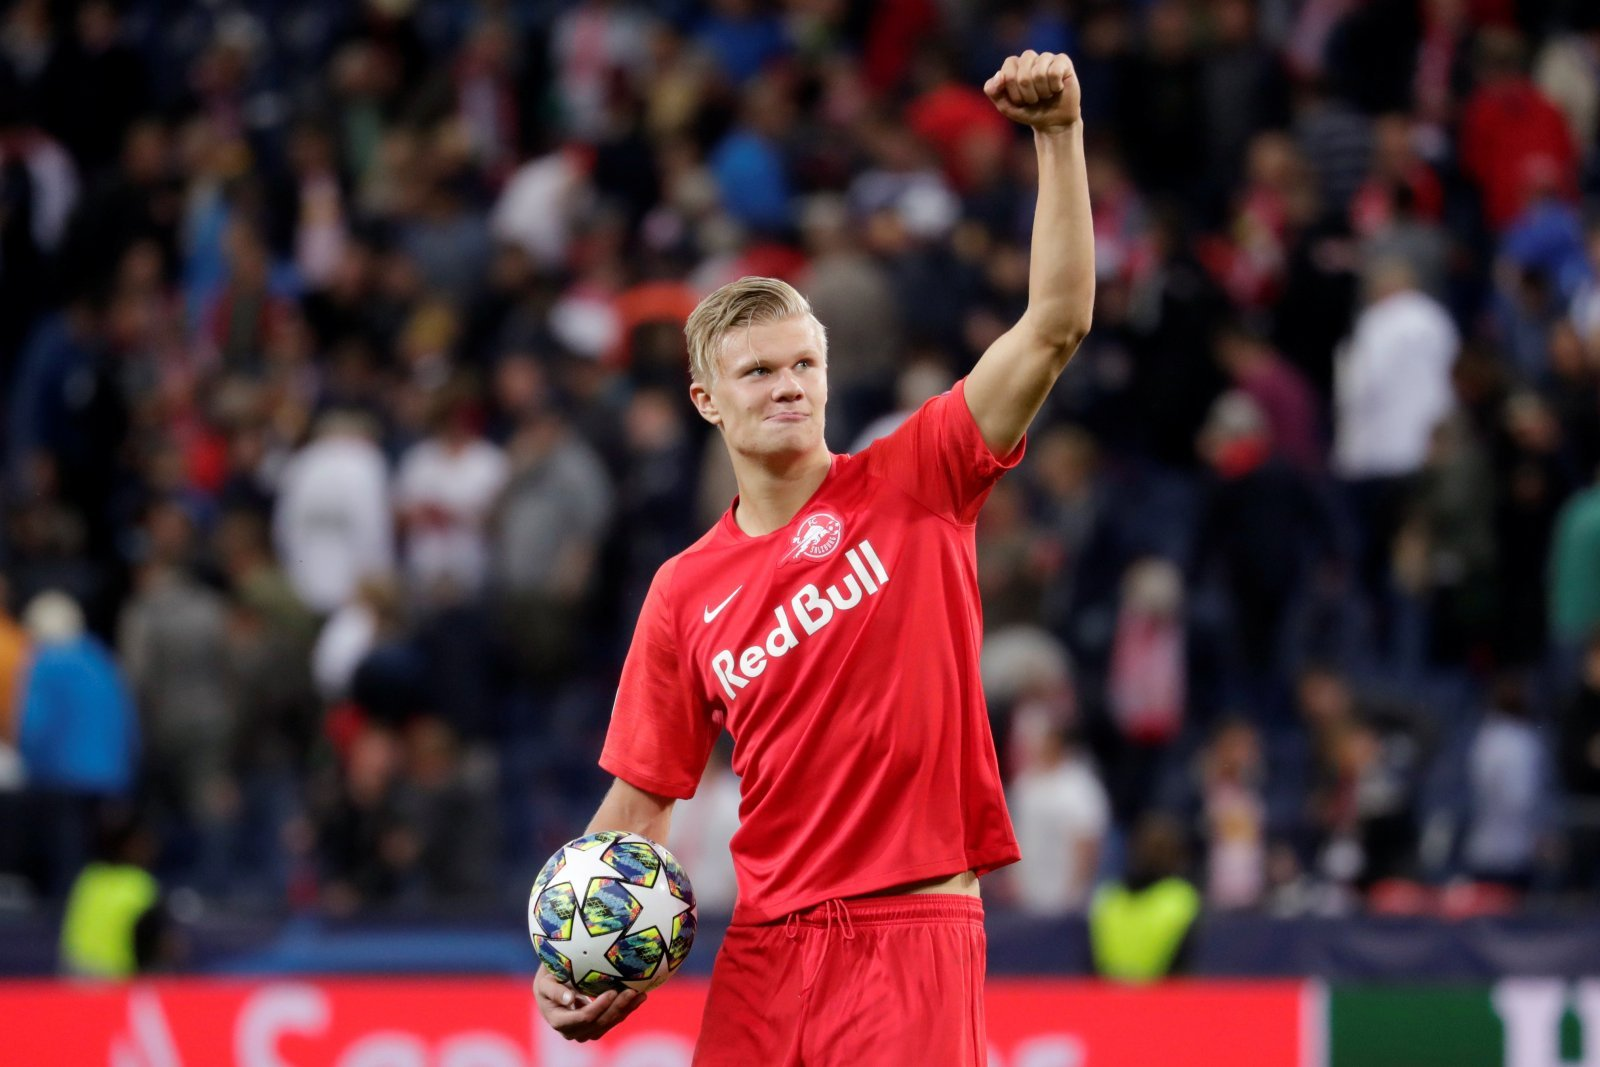 Liverpool: Erling Haaland advised by his former coach not to move to Anfield